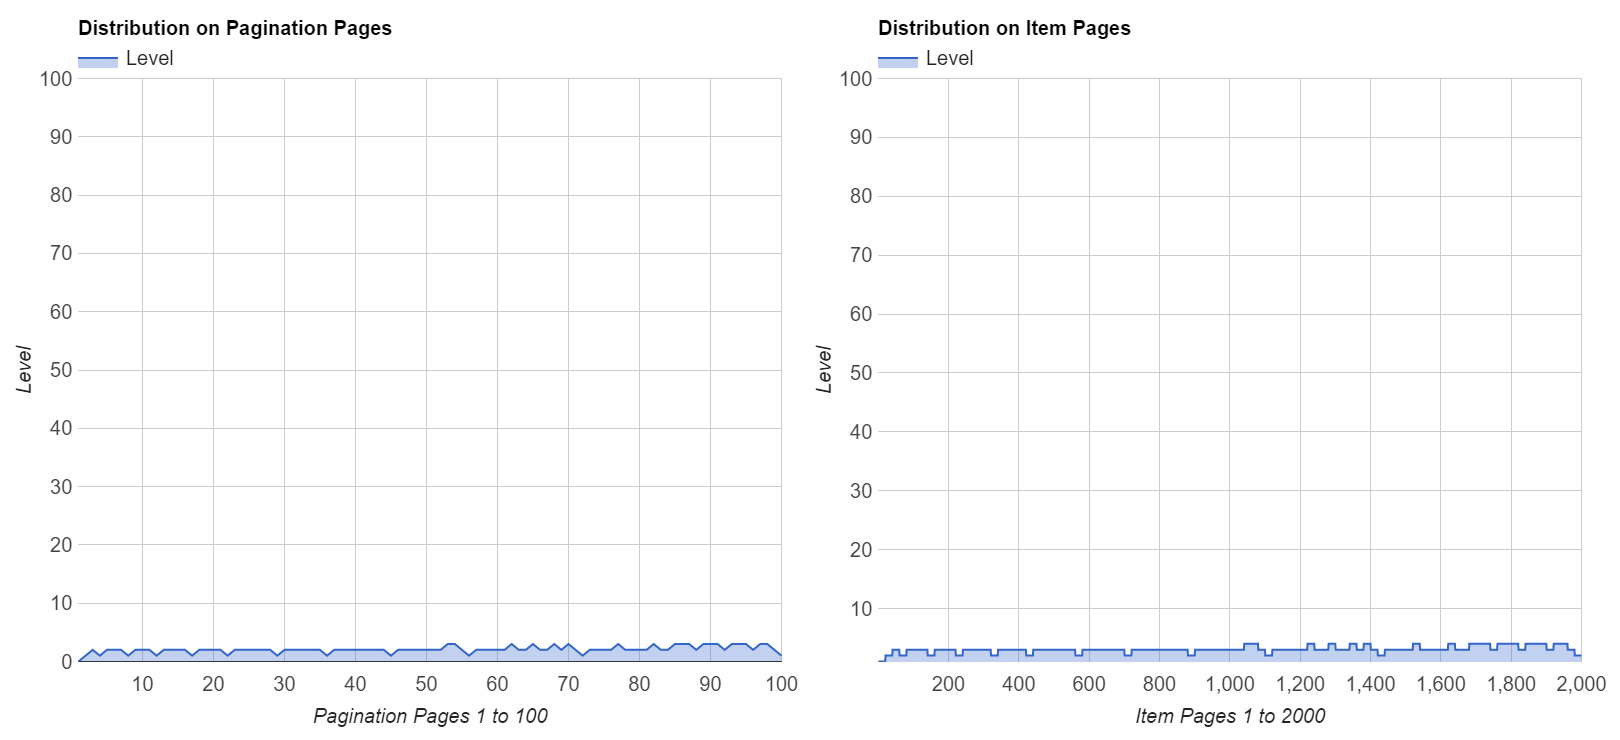 Level Distribution of Logarithmic Pagination